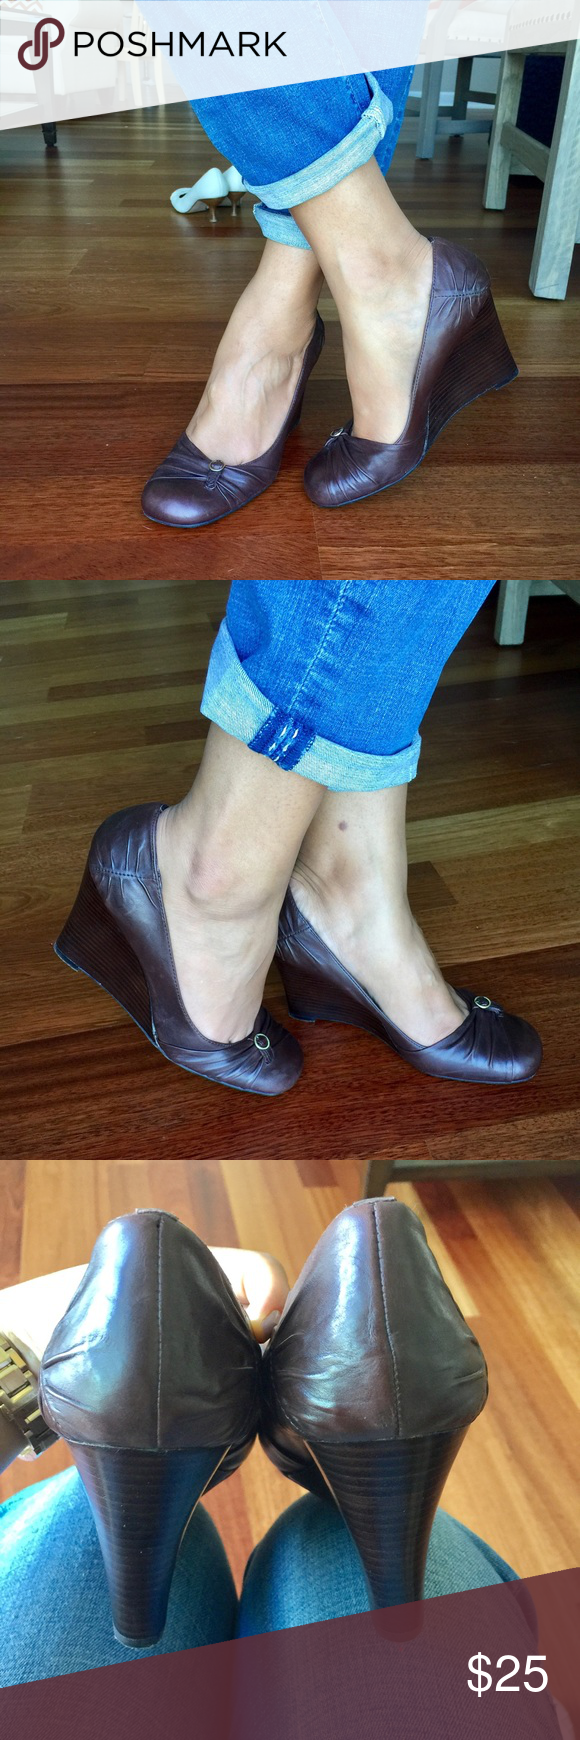 Aldo wedge shoes Aldo wedge shoes- worn once- brown color, leather upper, 3.75' wedge wooden heels,size 39 fit like an 8.5. Aldo Shoes Wedges